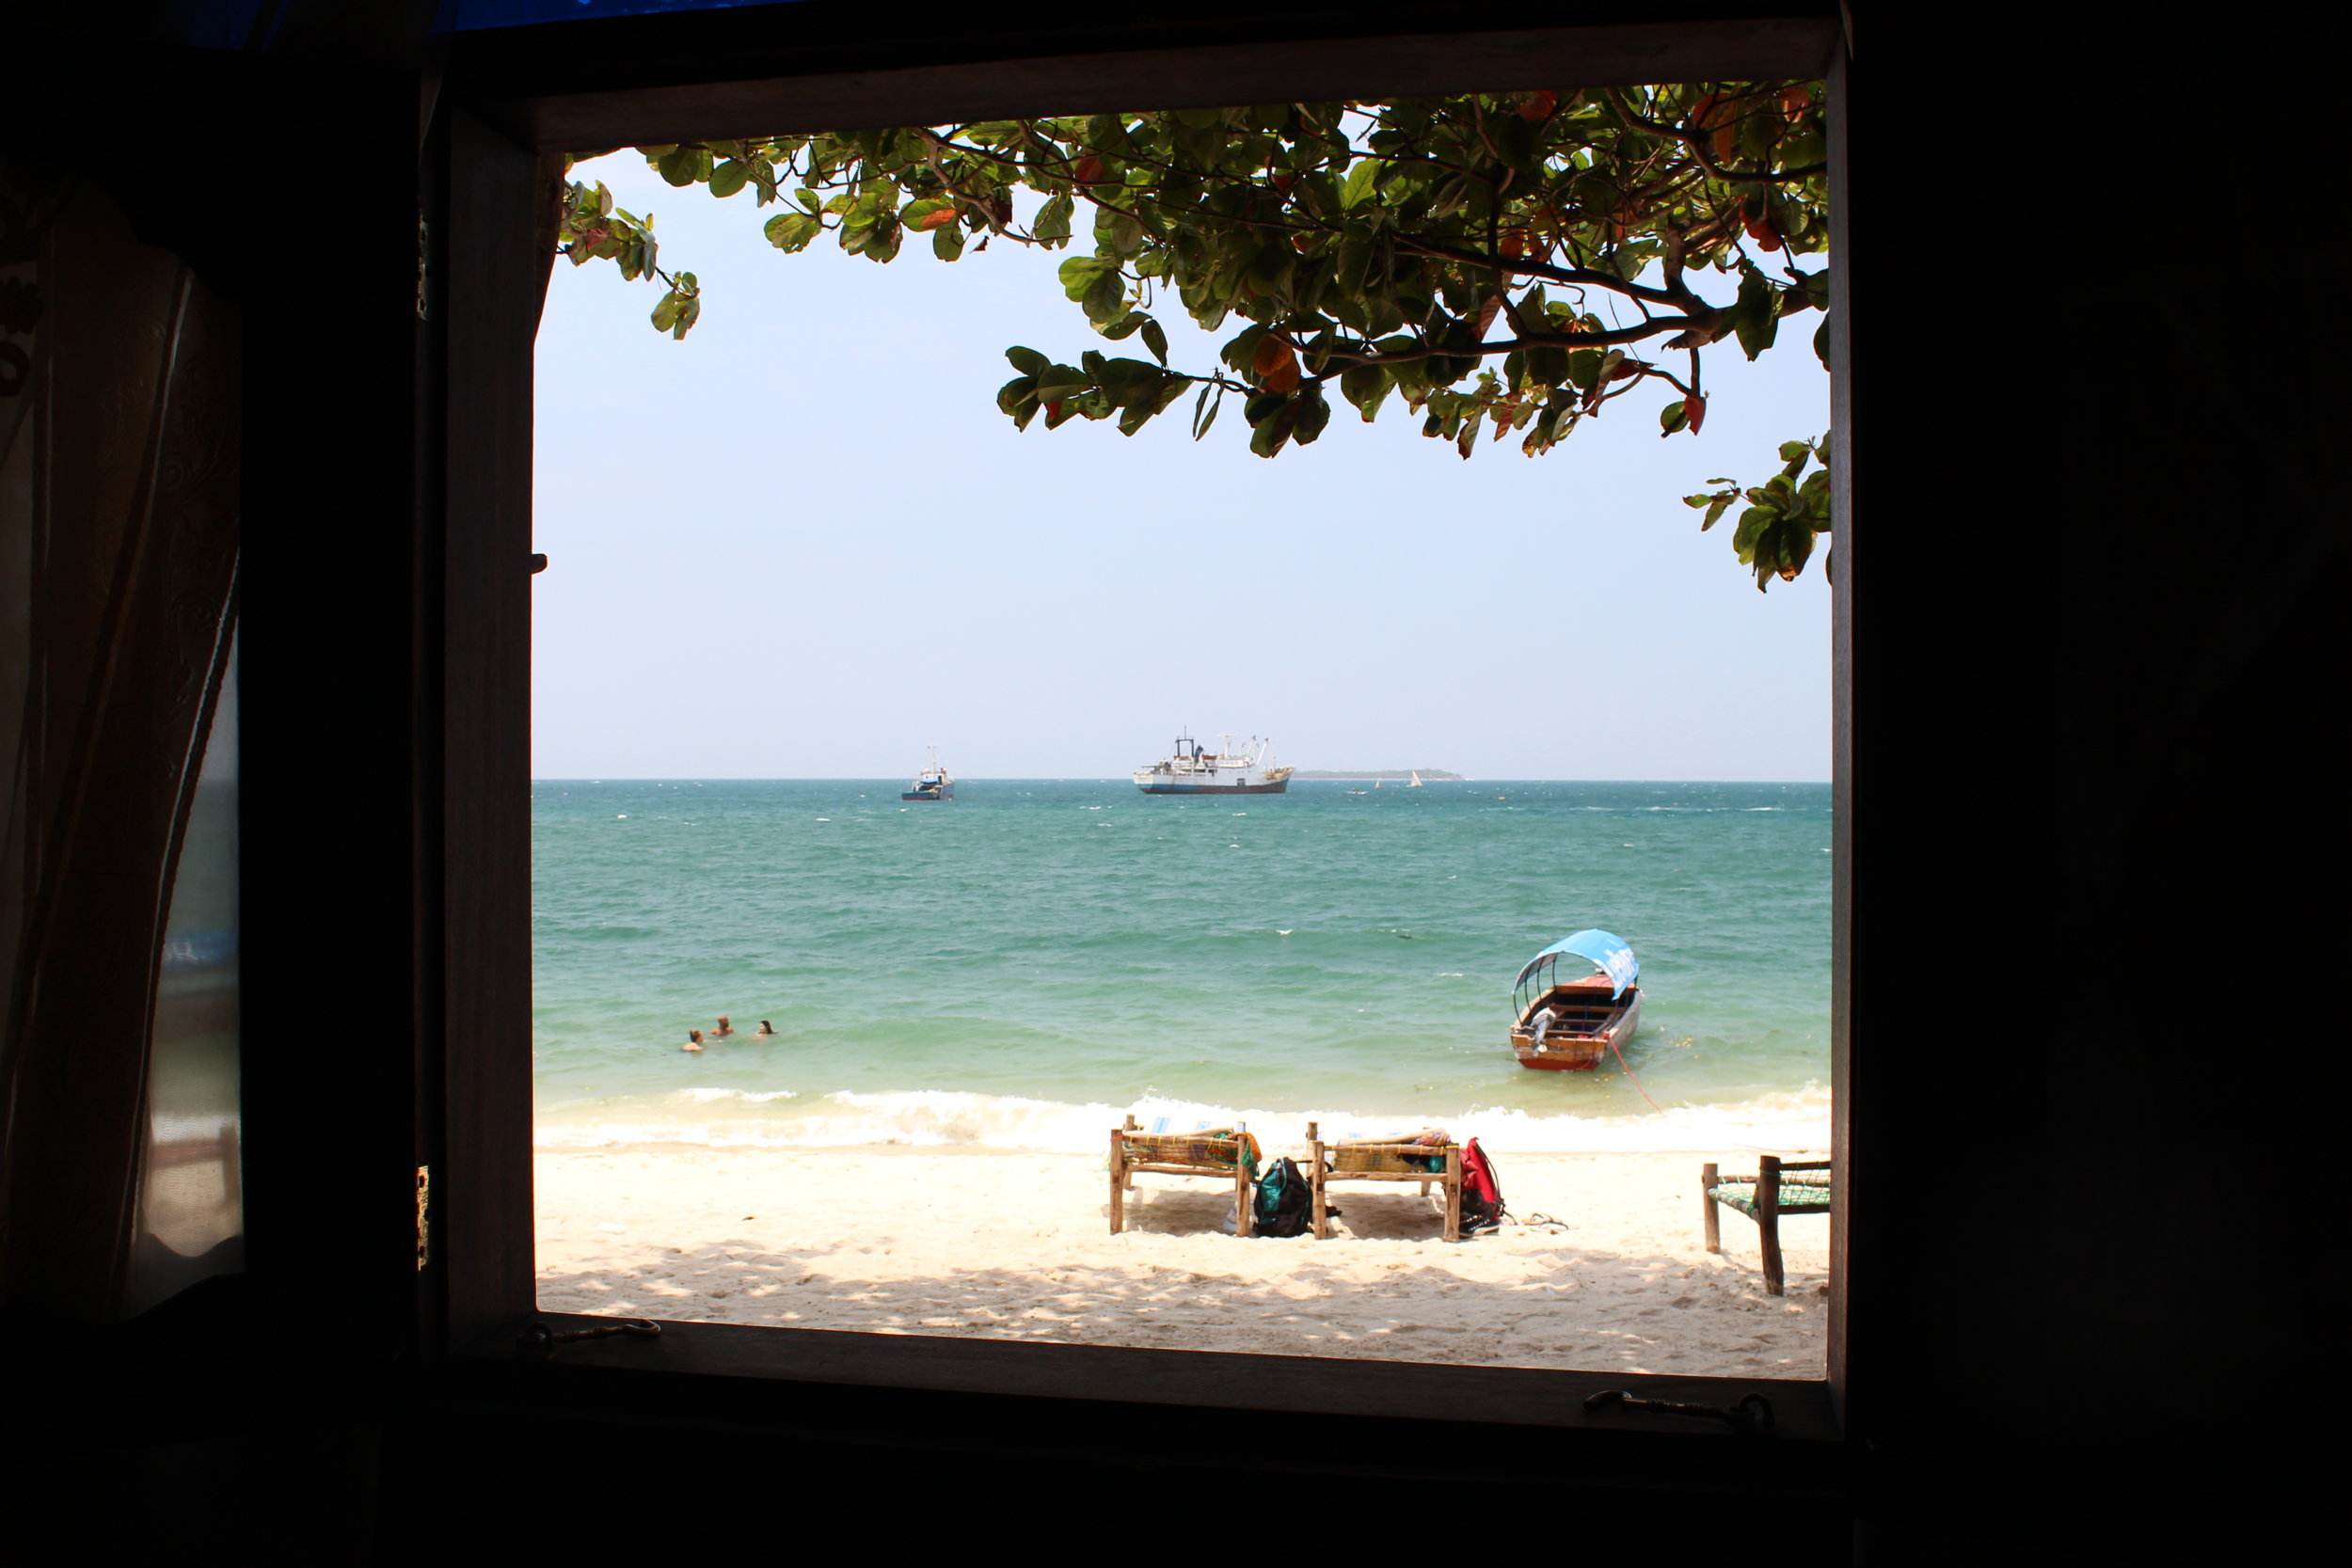 View of the ocean from our room in the Tembo Hotel in Stone Town, Zanzibar